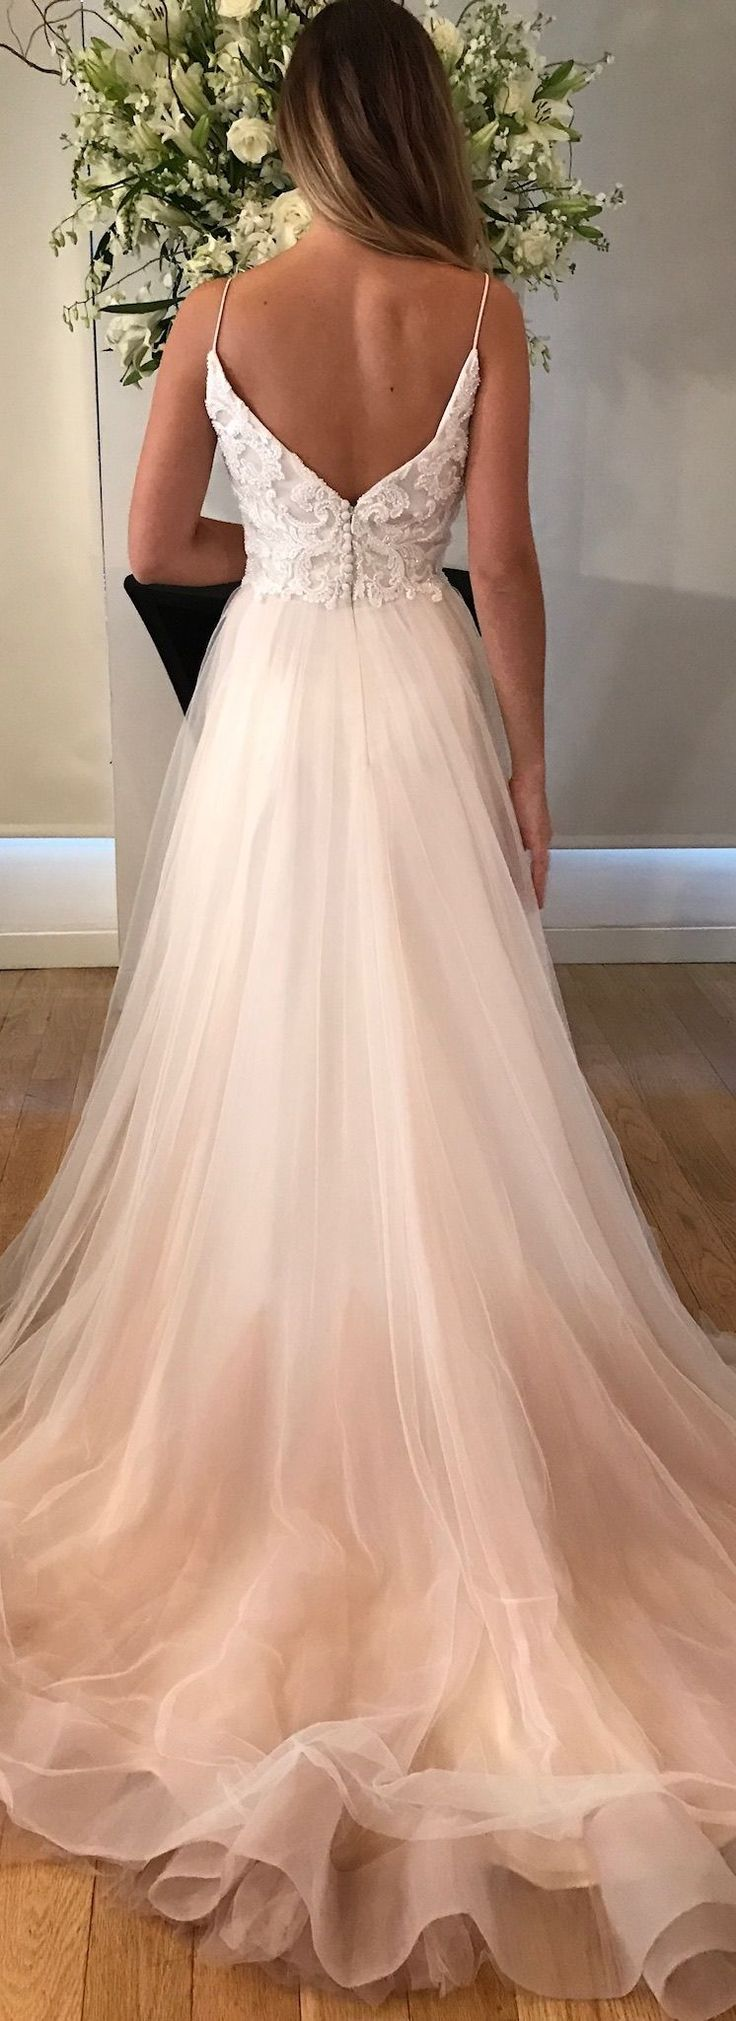 Star wedding dress by Kelly Faetanini in Blush // Pearlescent embroidered v-neck blush tulle ombre ball gown with horsehair hem